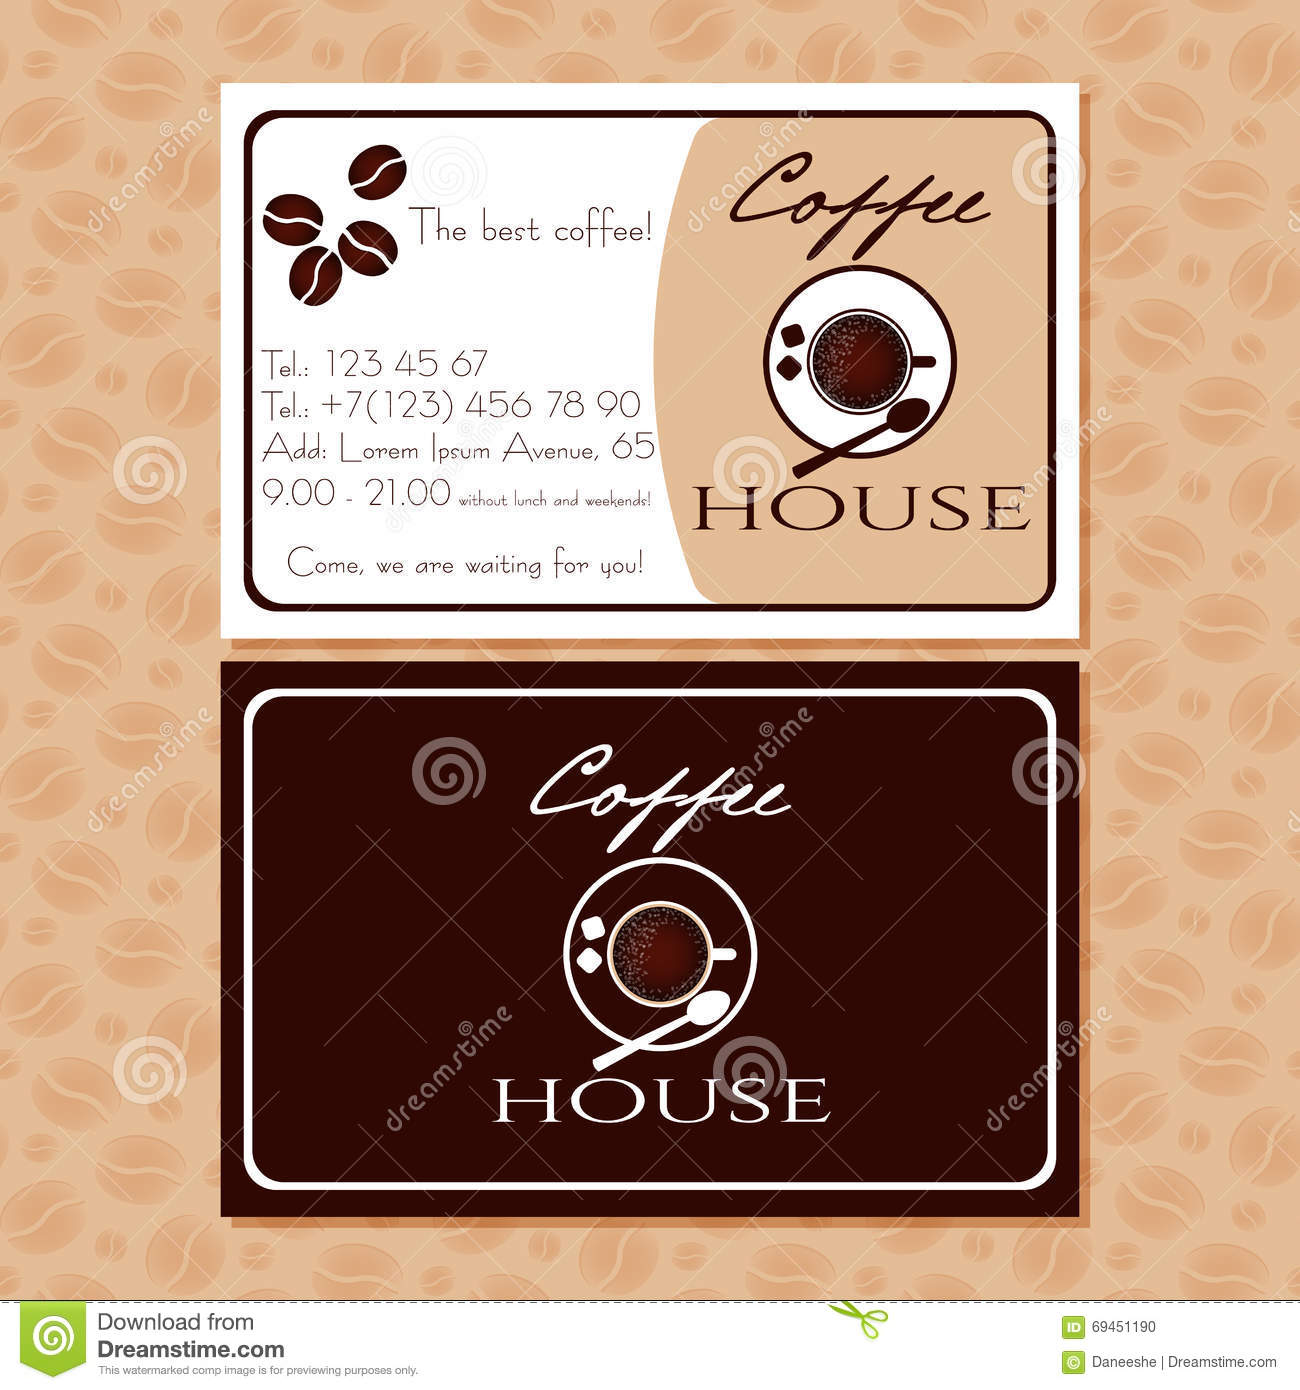 Coffee business cards for your design stock vector illustration of coffee business cards for your design colourmoves